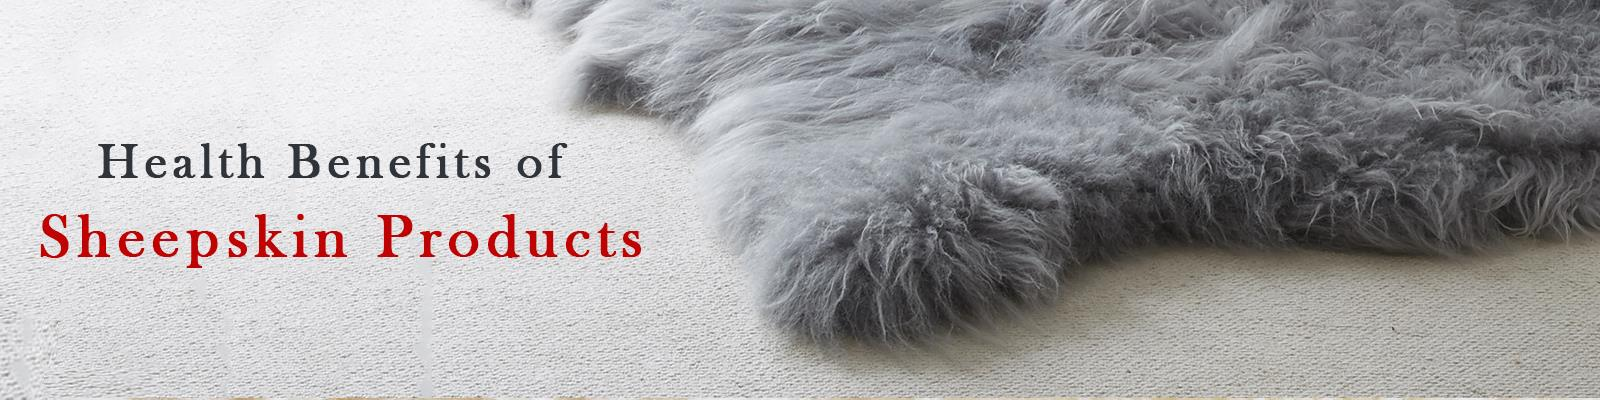 Top 10 Reasons Why Sheepskin Is Good for Your Health